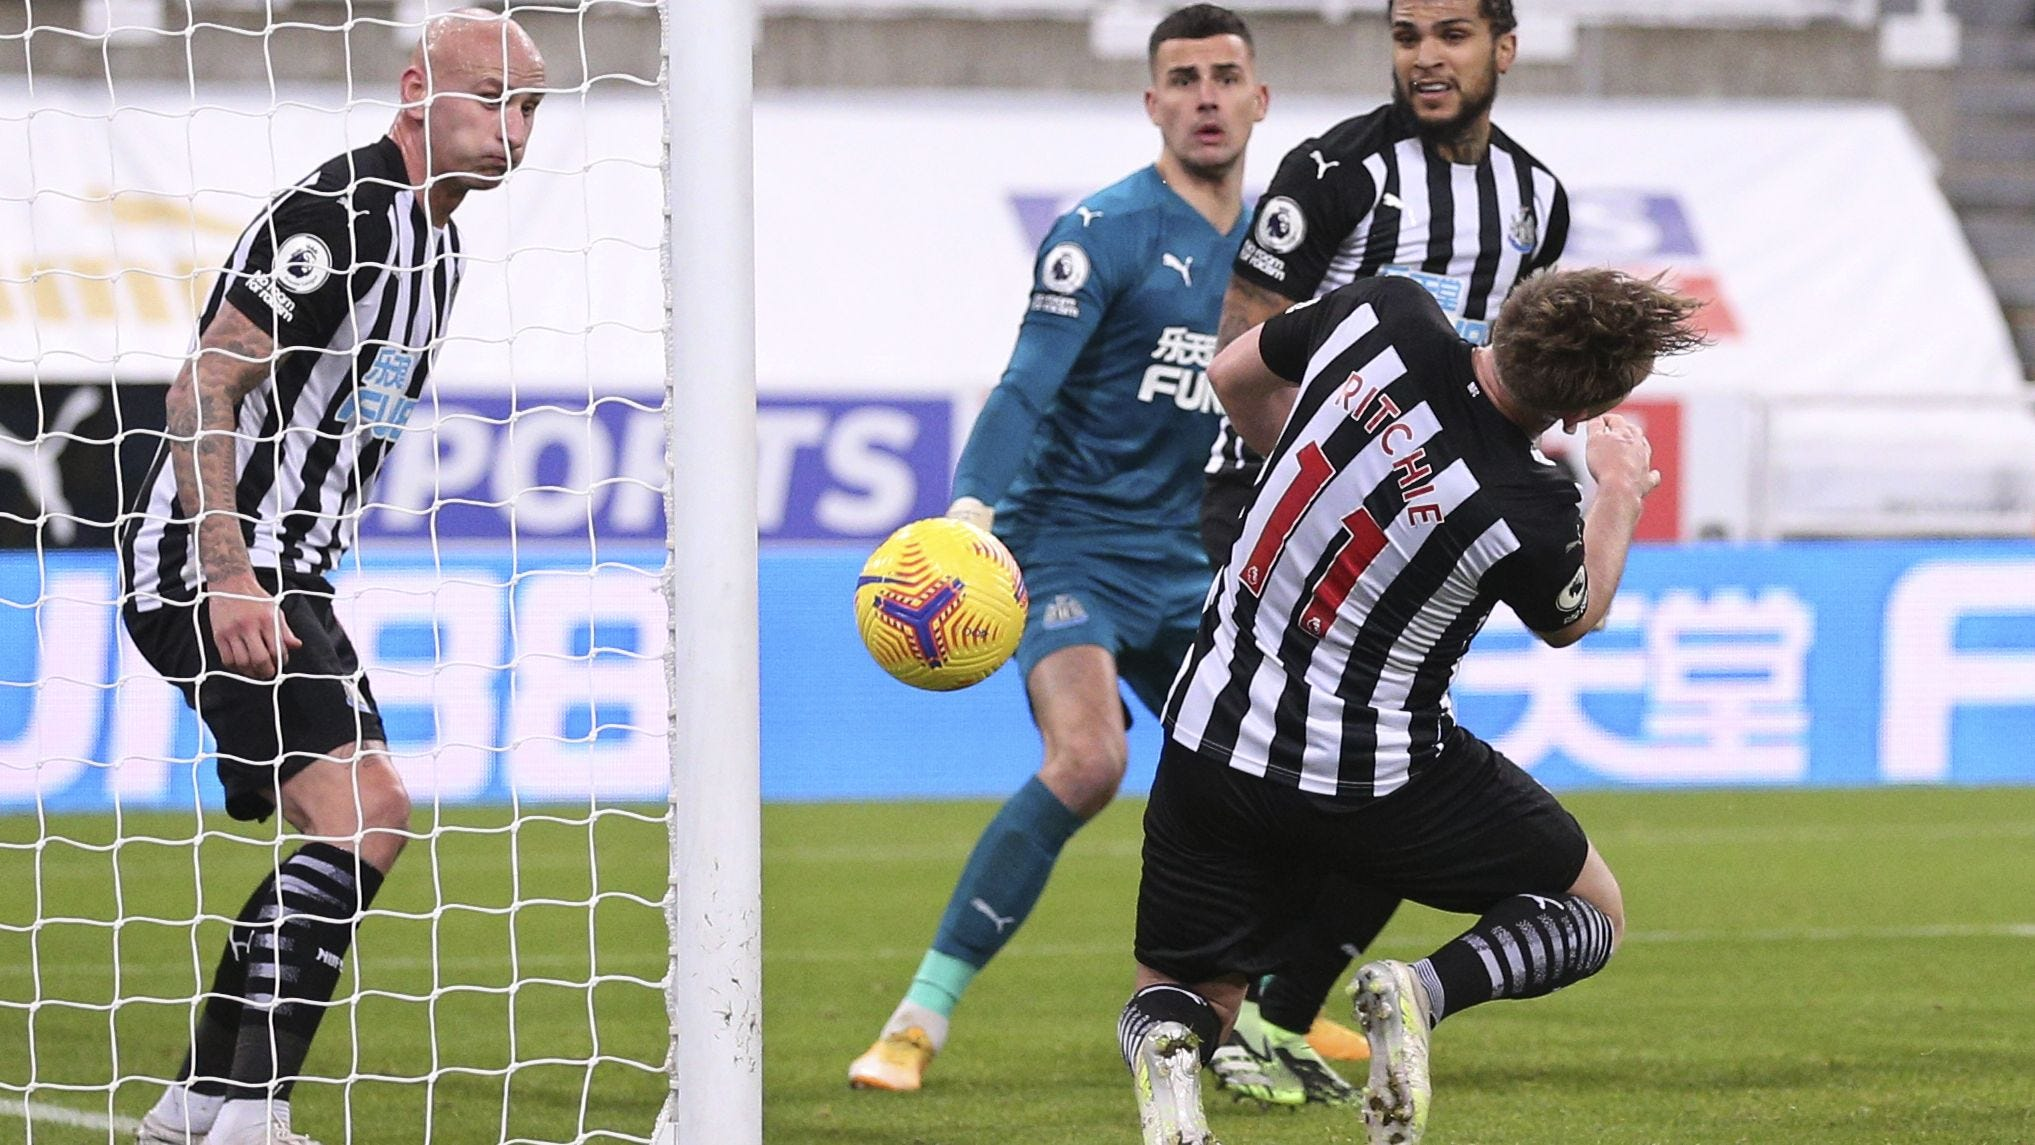 PLAYER RATINGS – Newcastle 1-1 Fulham: Two 7's, a few 6's, the odd 5,  several 4's & one 3 | NUFC Blog - Newcastle United Blog